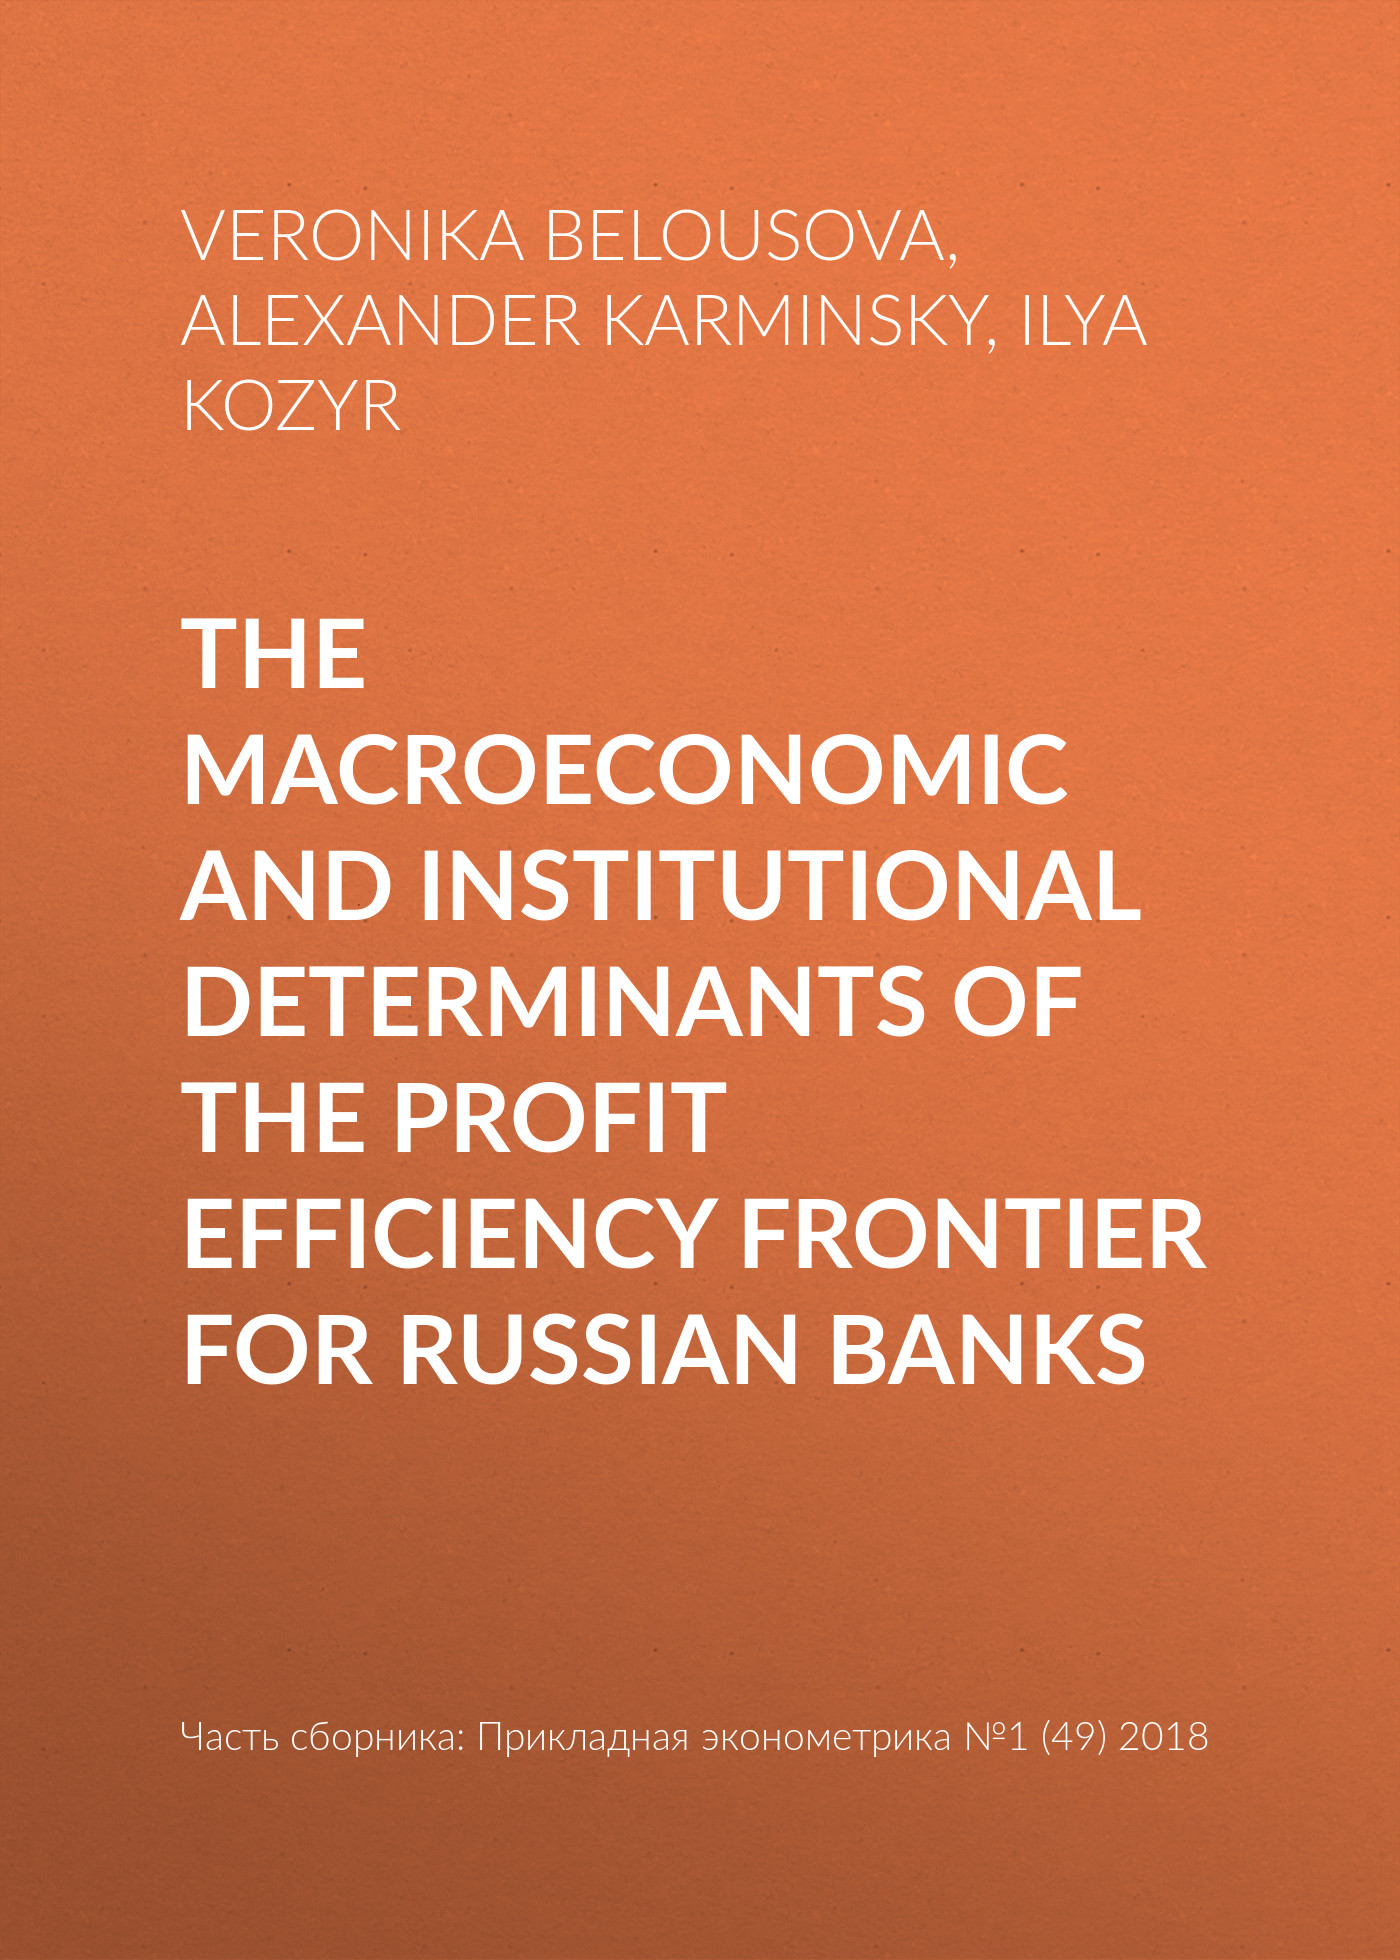 Veronika Belousova The macroeconomic and institutional determinants of the profit efficiency frontier for Russian banks [zob] 100% new original omron omron ratchet relay g4q 212s ac220v 2pcs lot